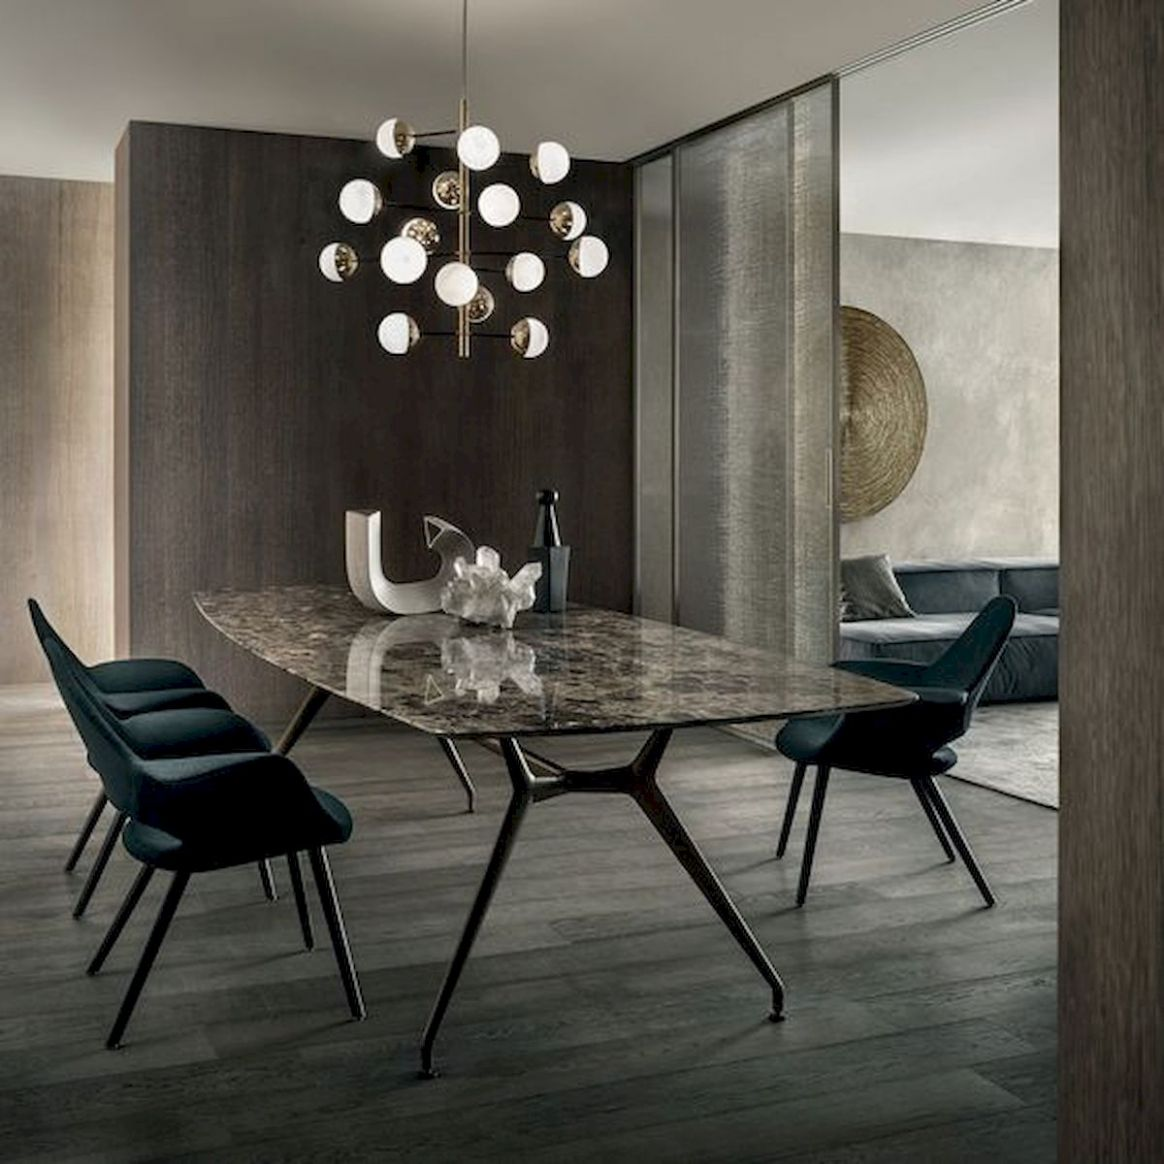 11 Elegant Modern Dining Room Design and Decor Ideas - house1155